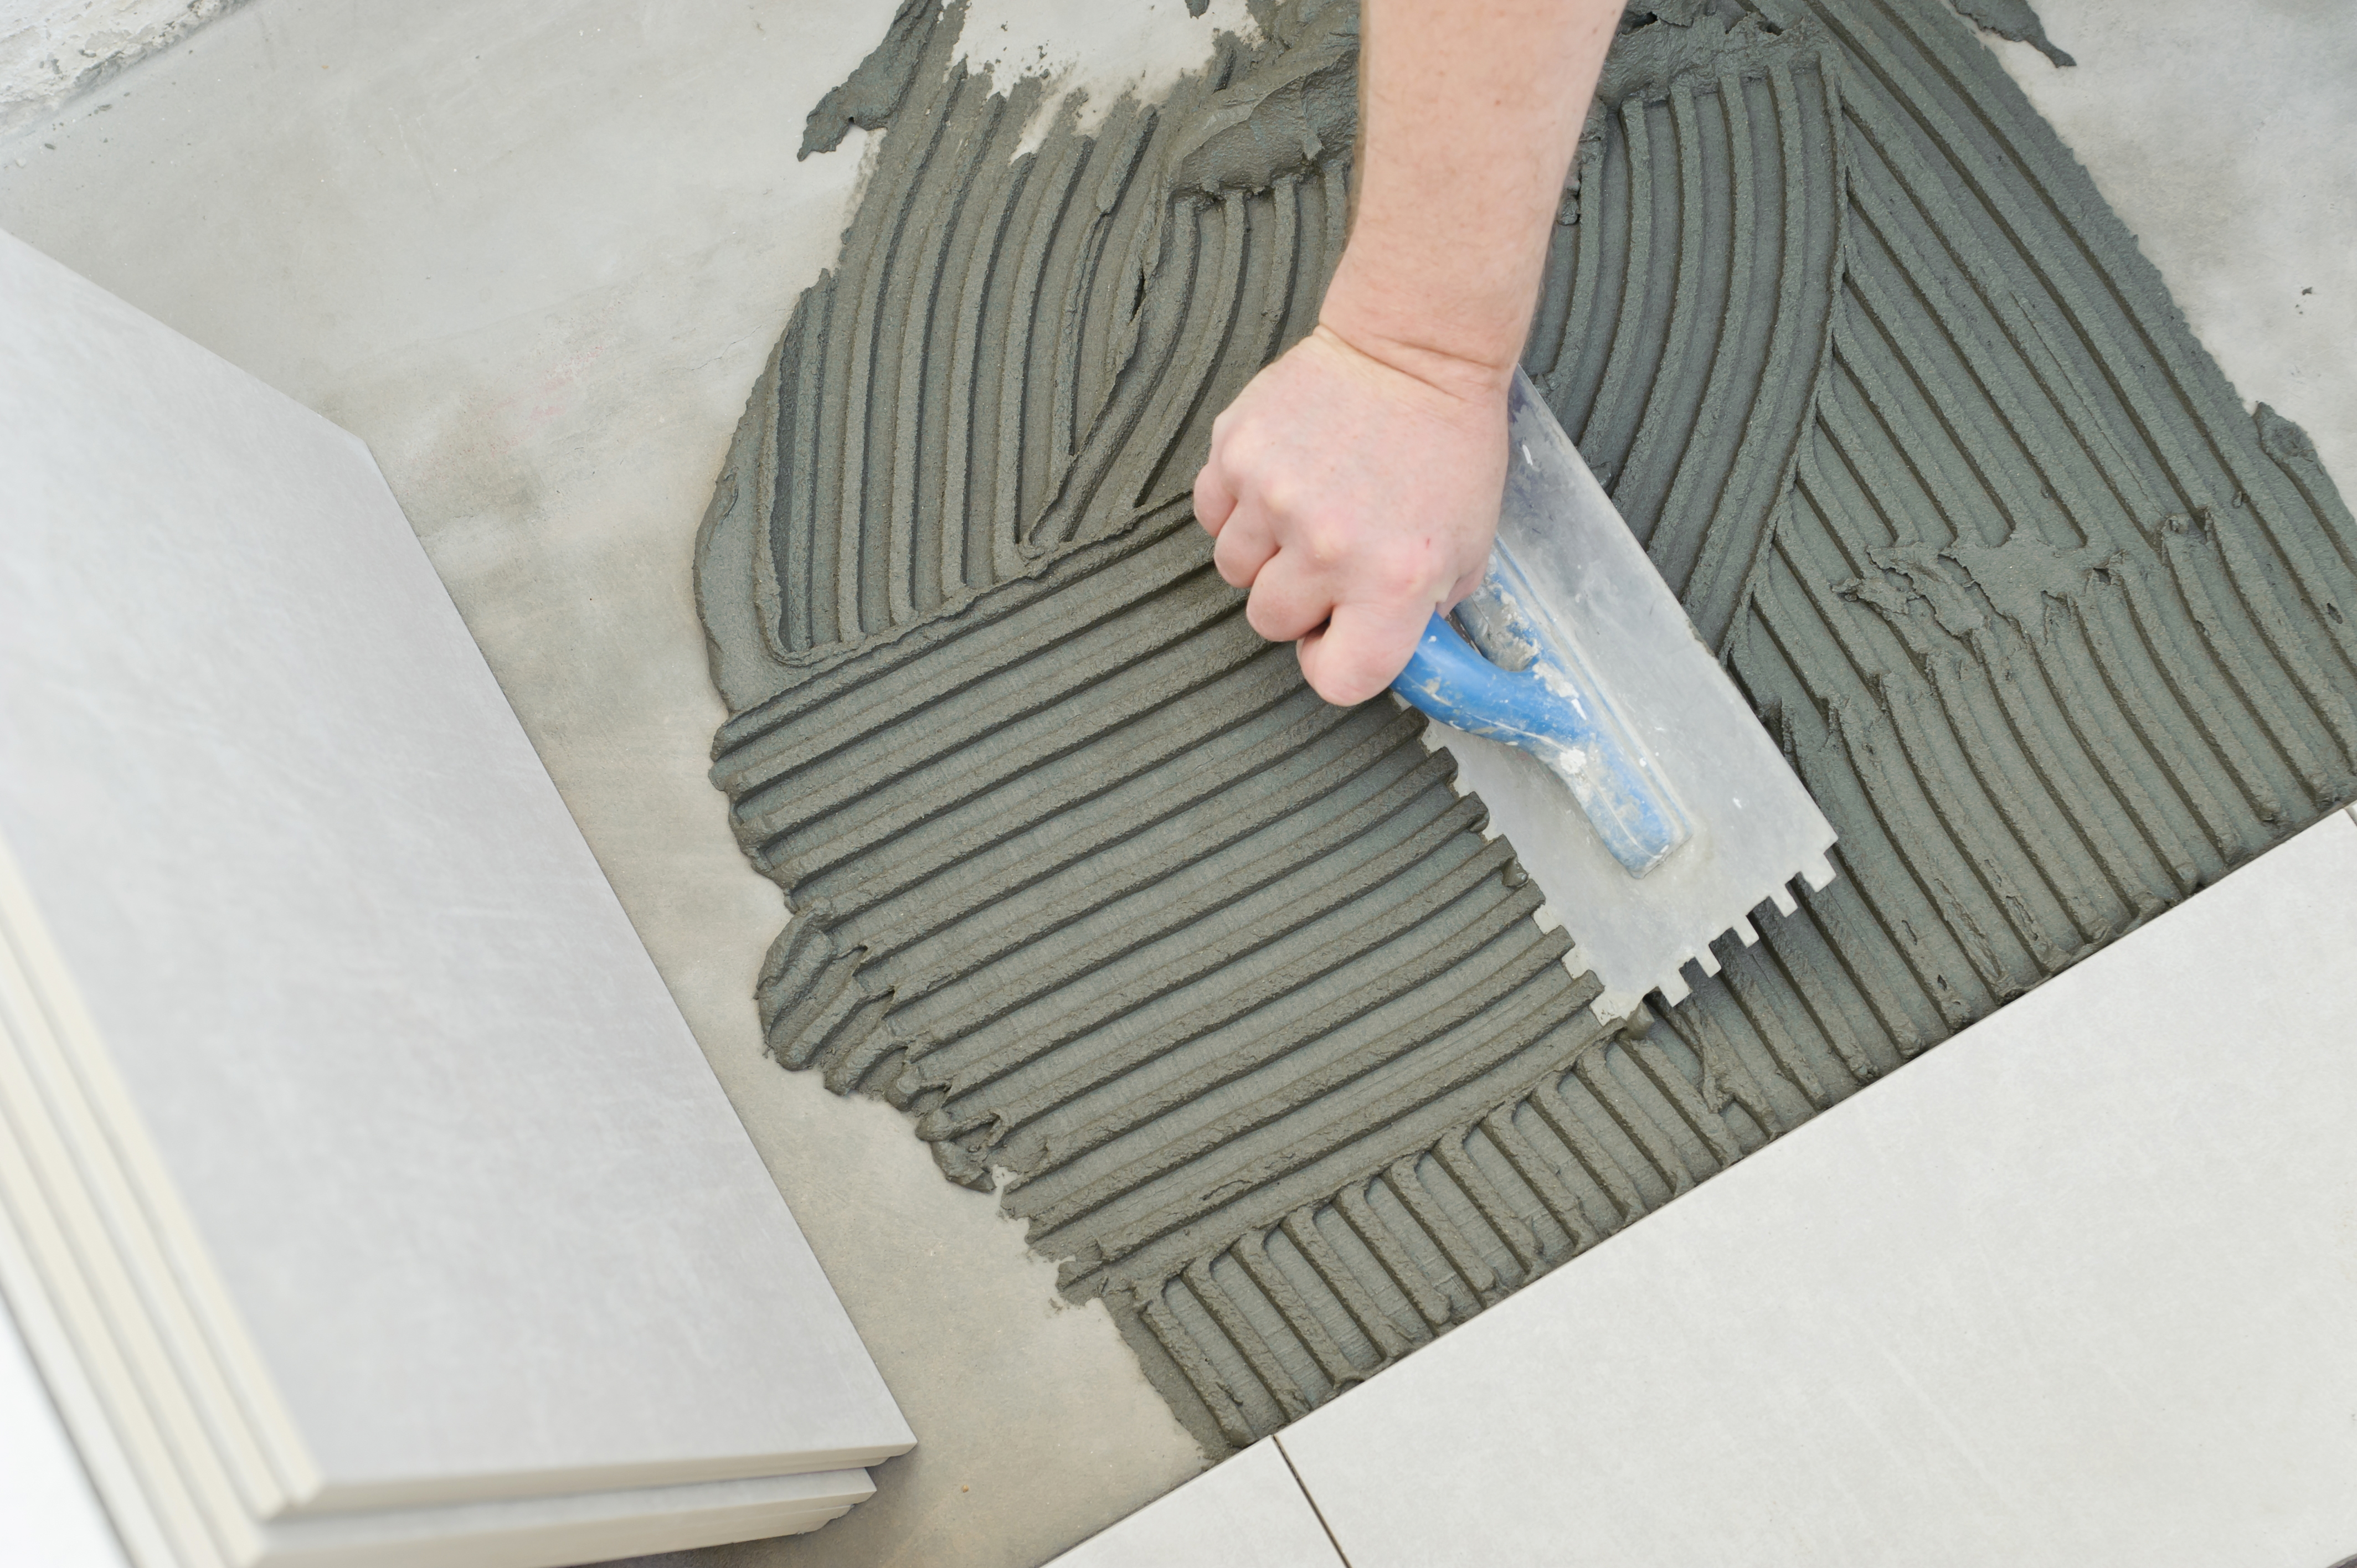 How To Prepare Concrete For A Tile Installationlearning Center